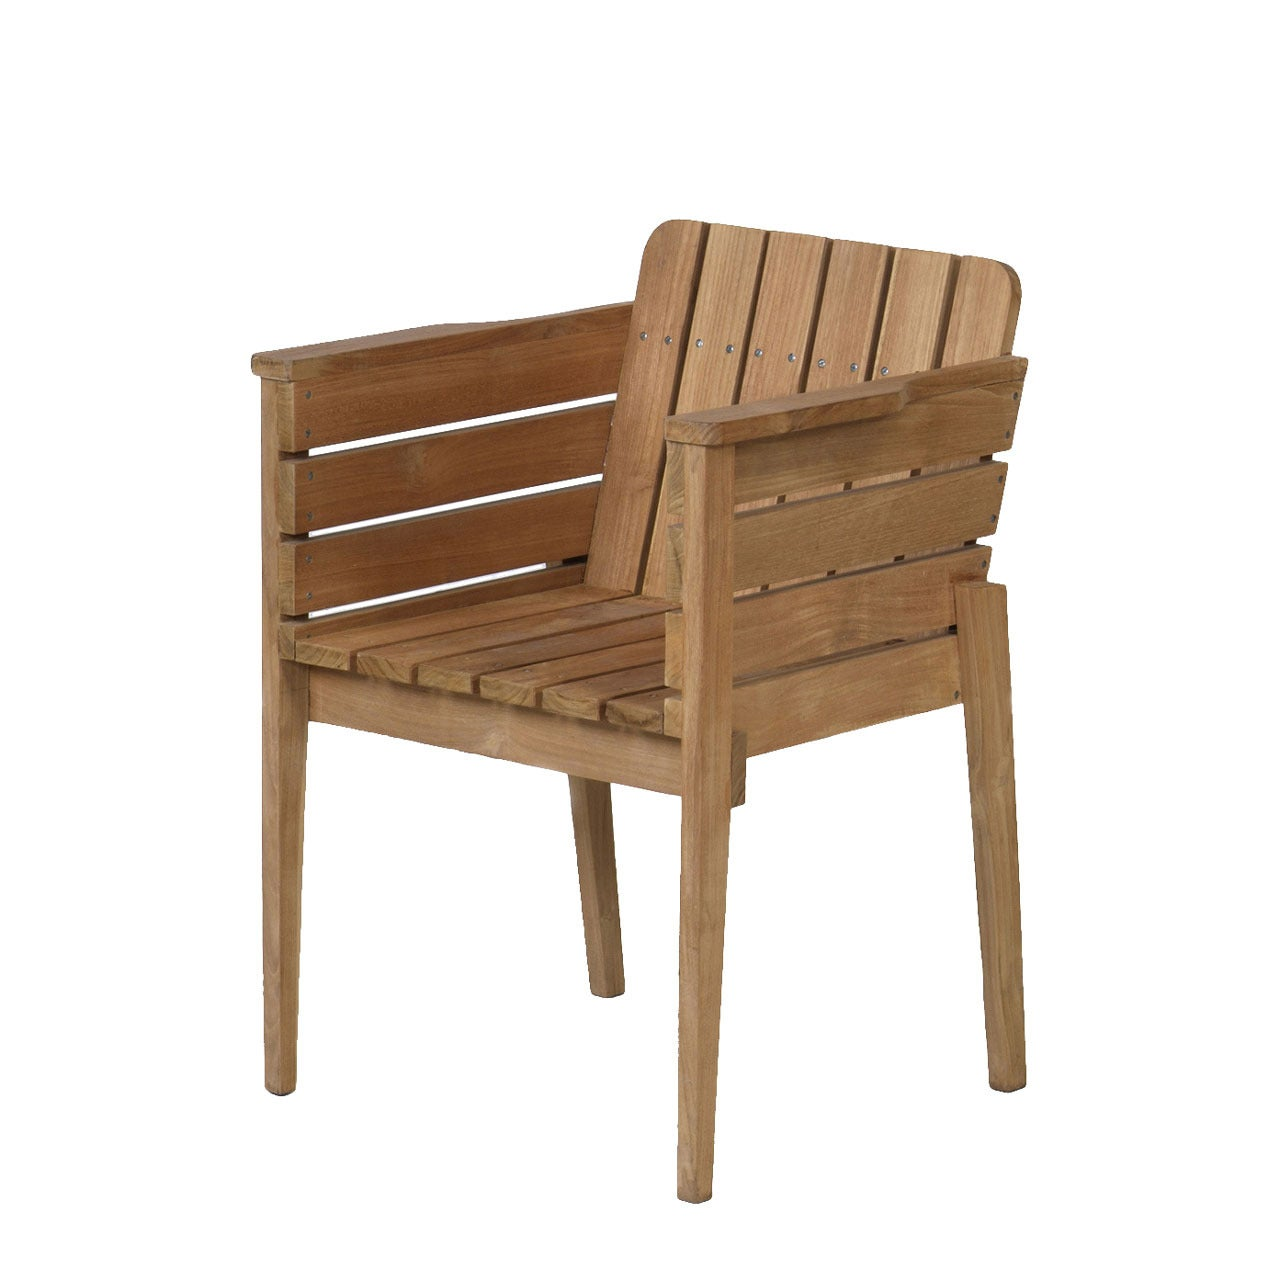 Piet Hein Eek Outdoor Bucket Chair in Teak For Sale at 1stdibs